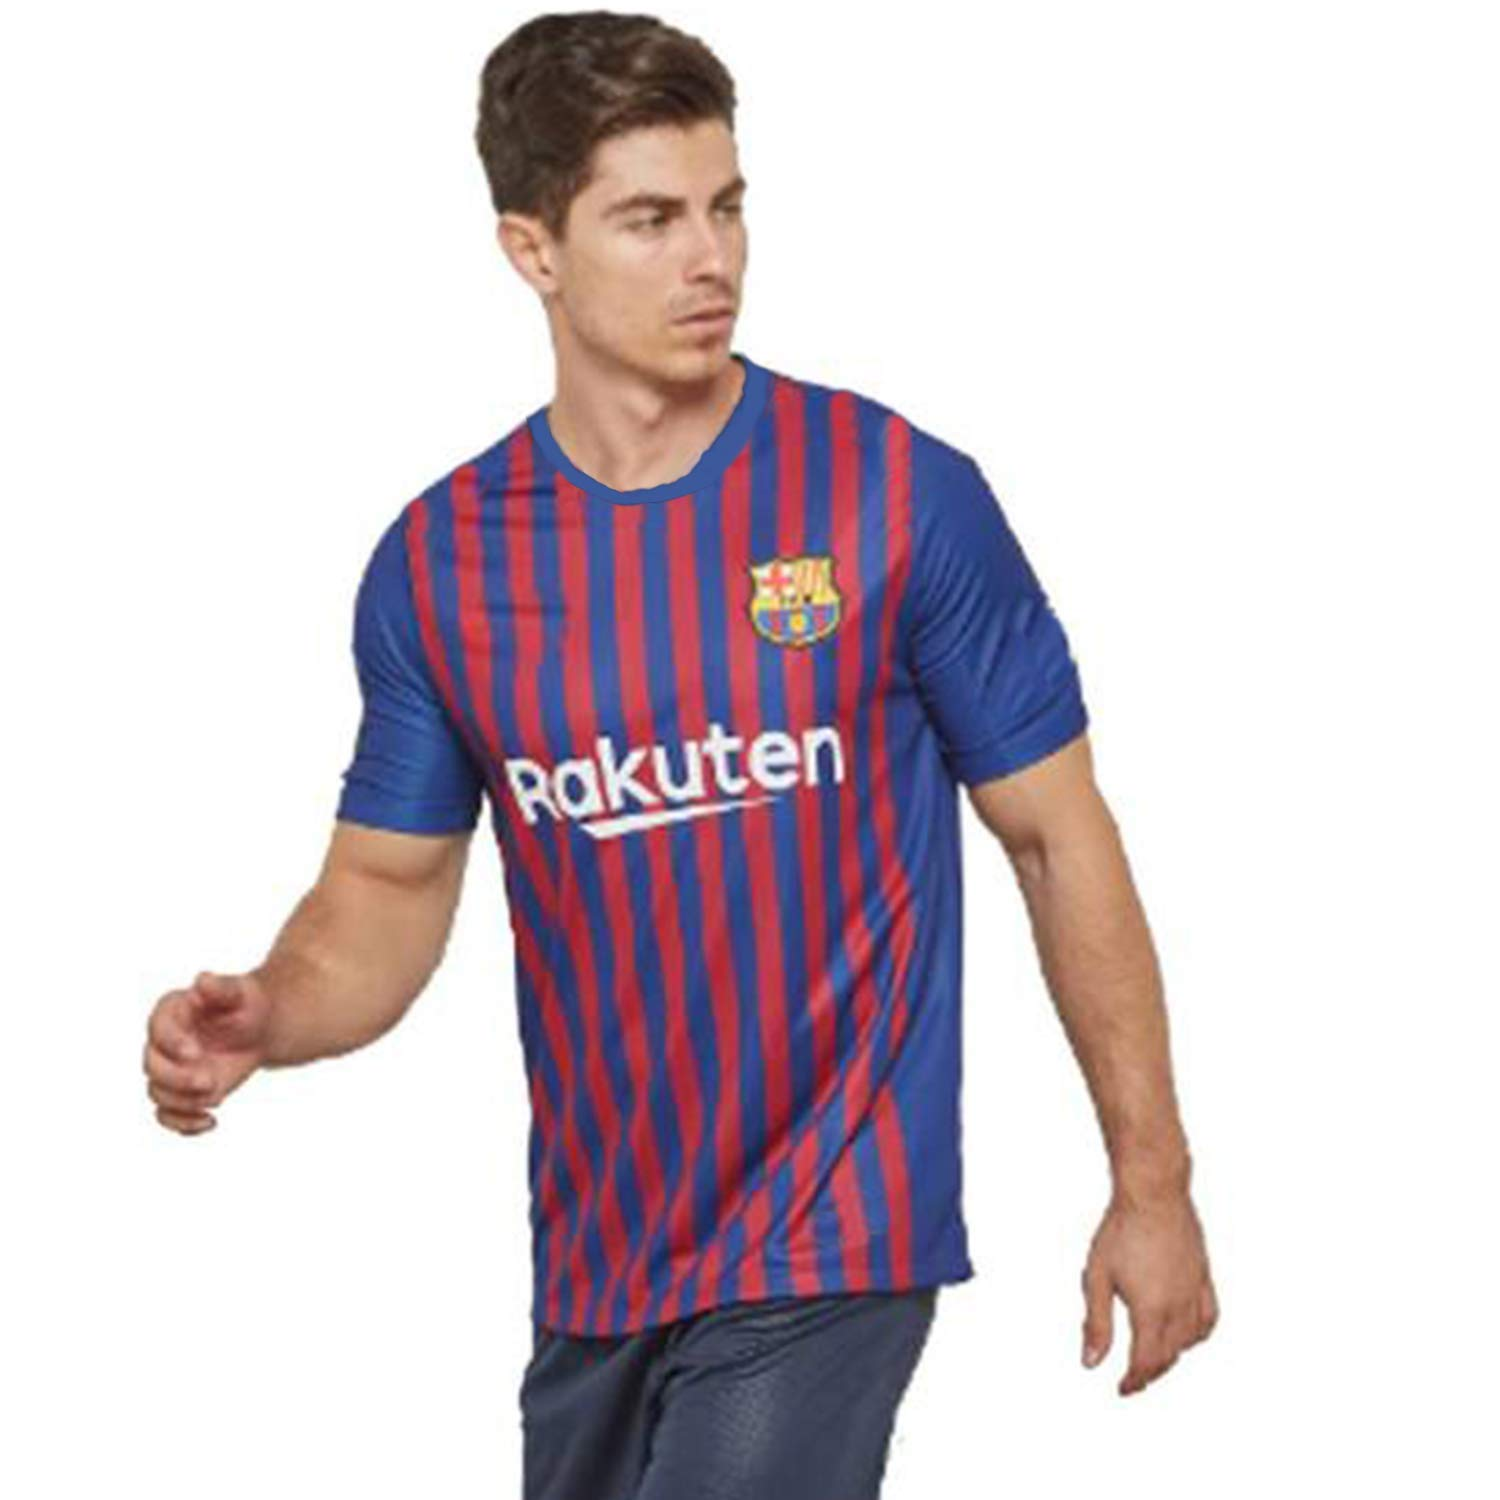 7658d6f2572 Argentina Messi T Shirt Online India – EDGE Engineering and ...